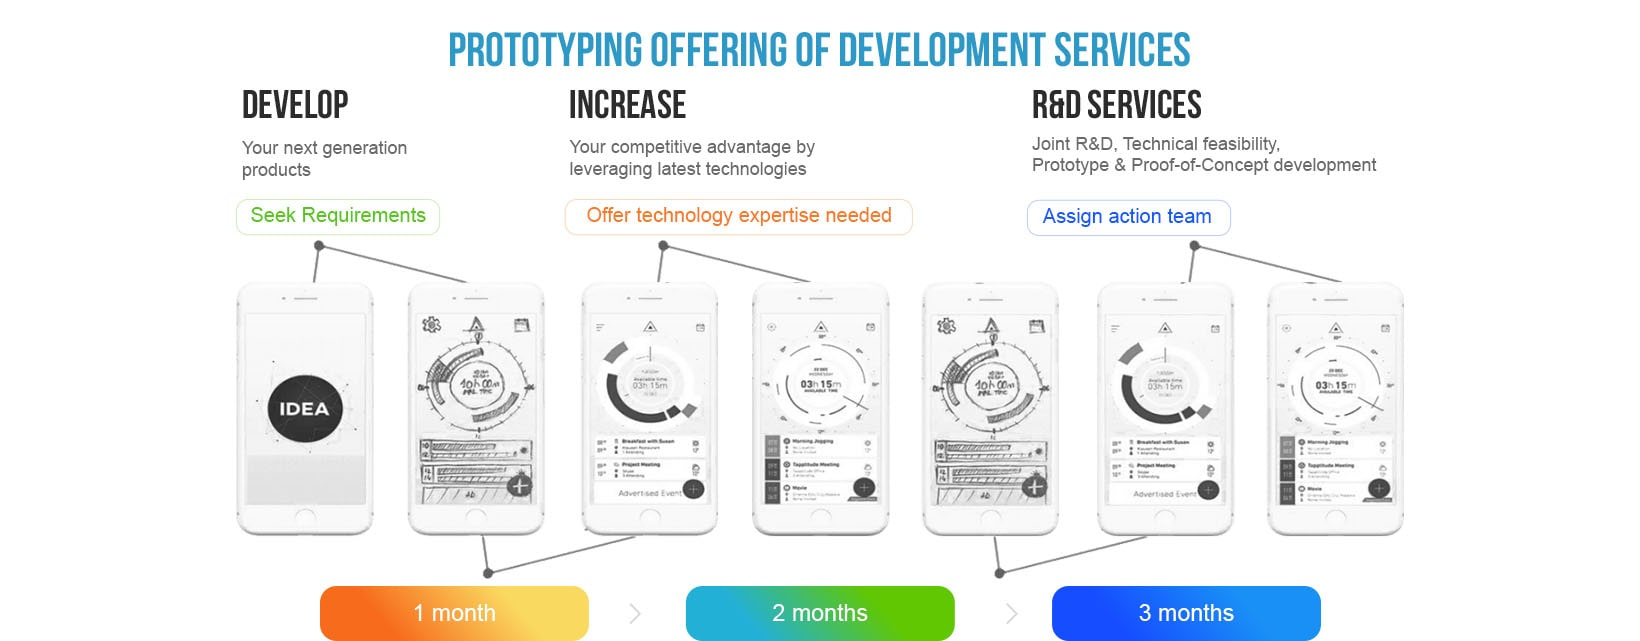 Prototyping offering of Development Services